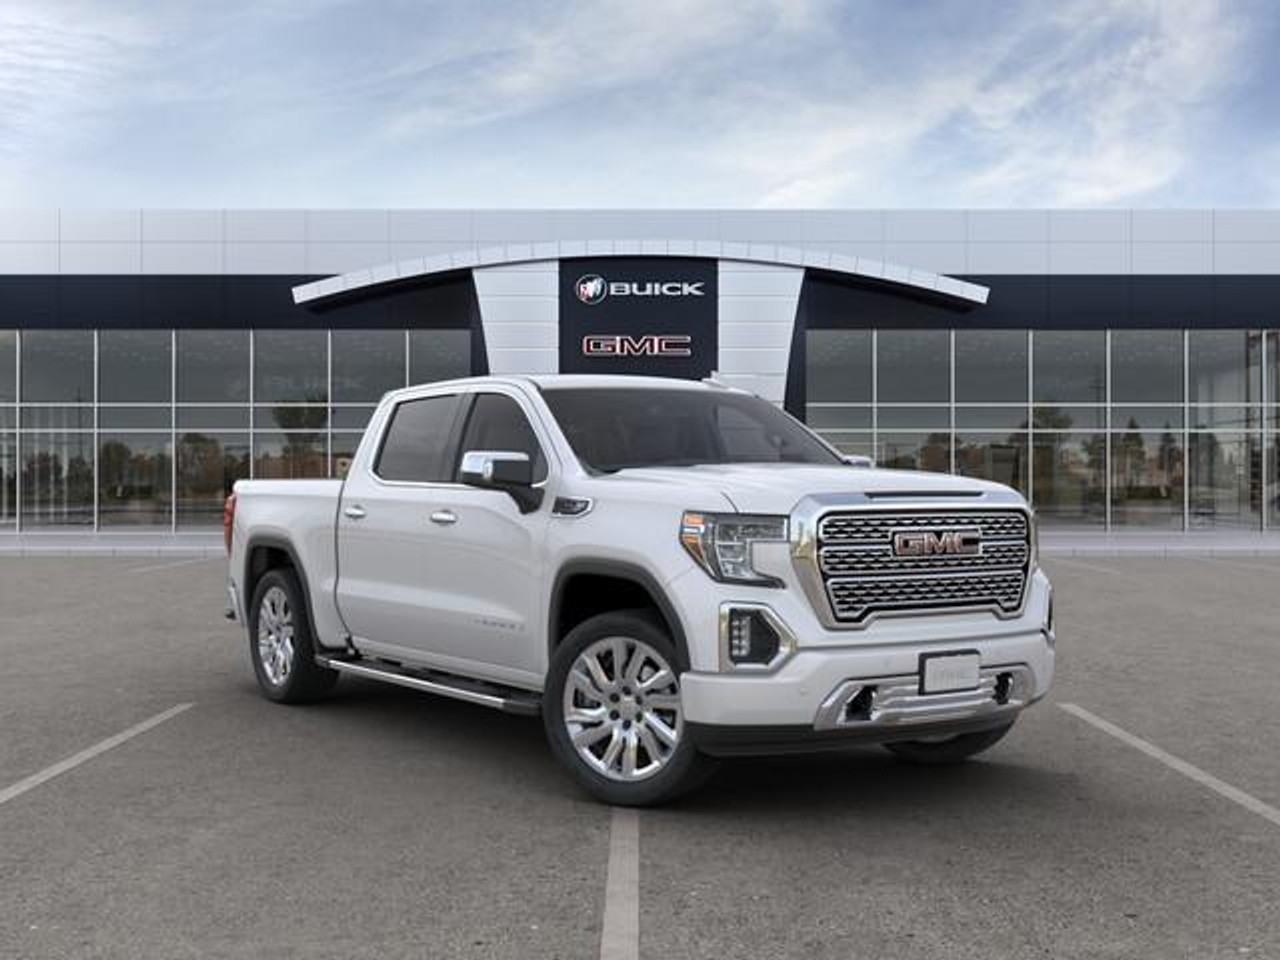 Gmc Chrome 22 Inch With Angled Chrome Inserts Replica Wheels